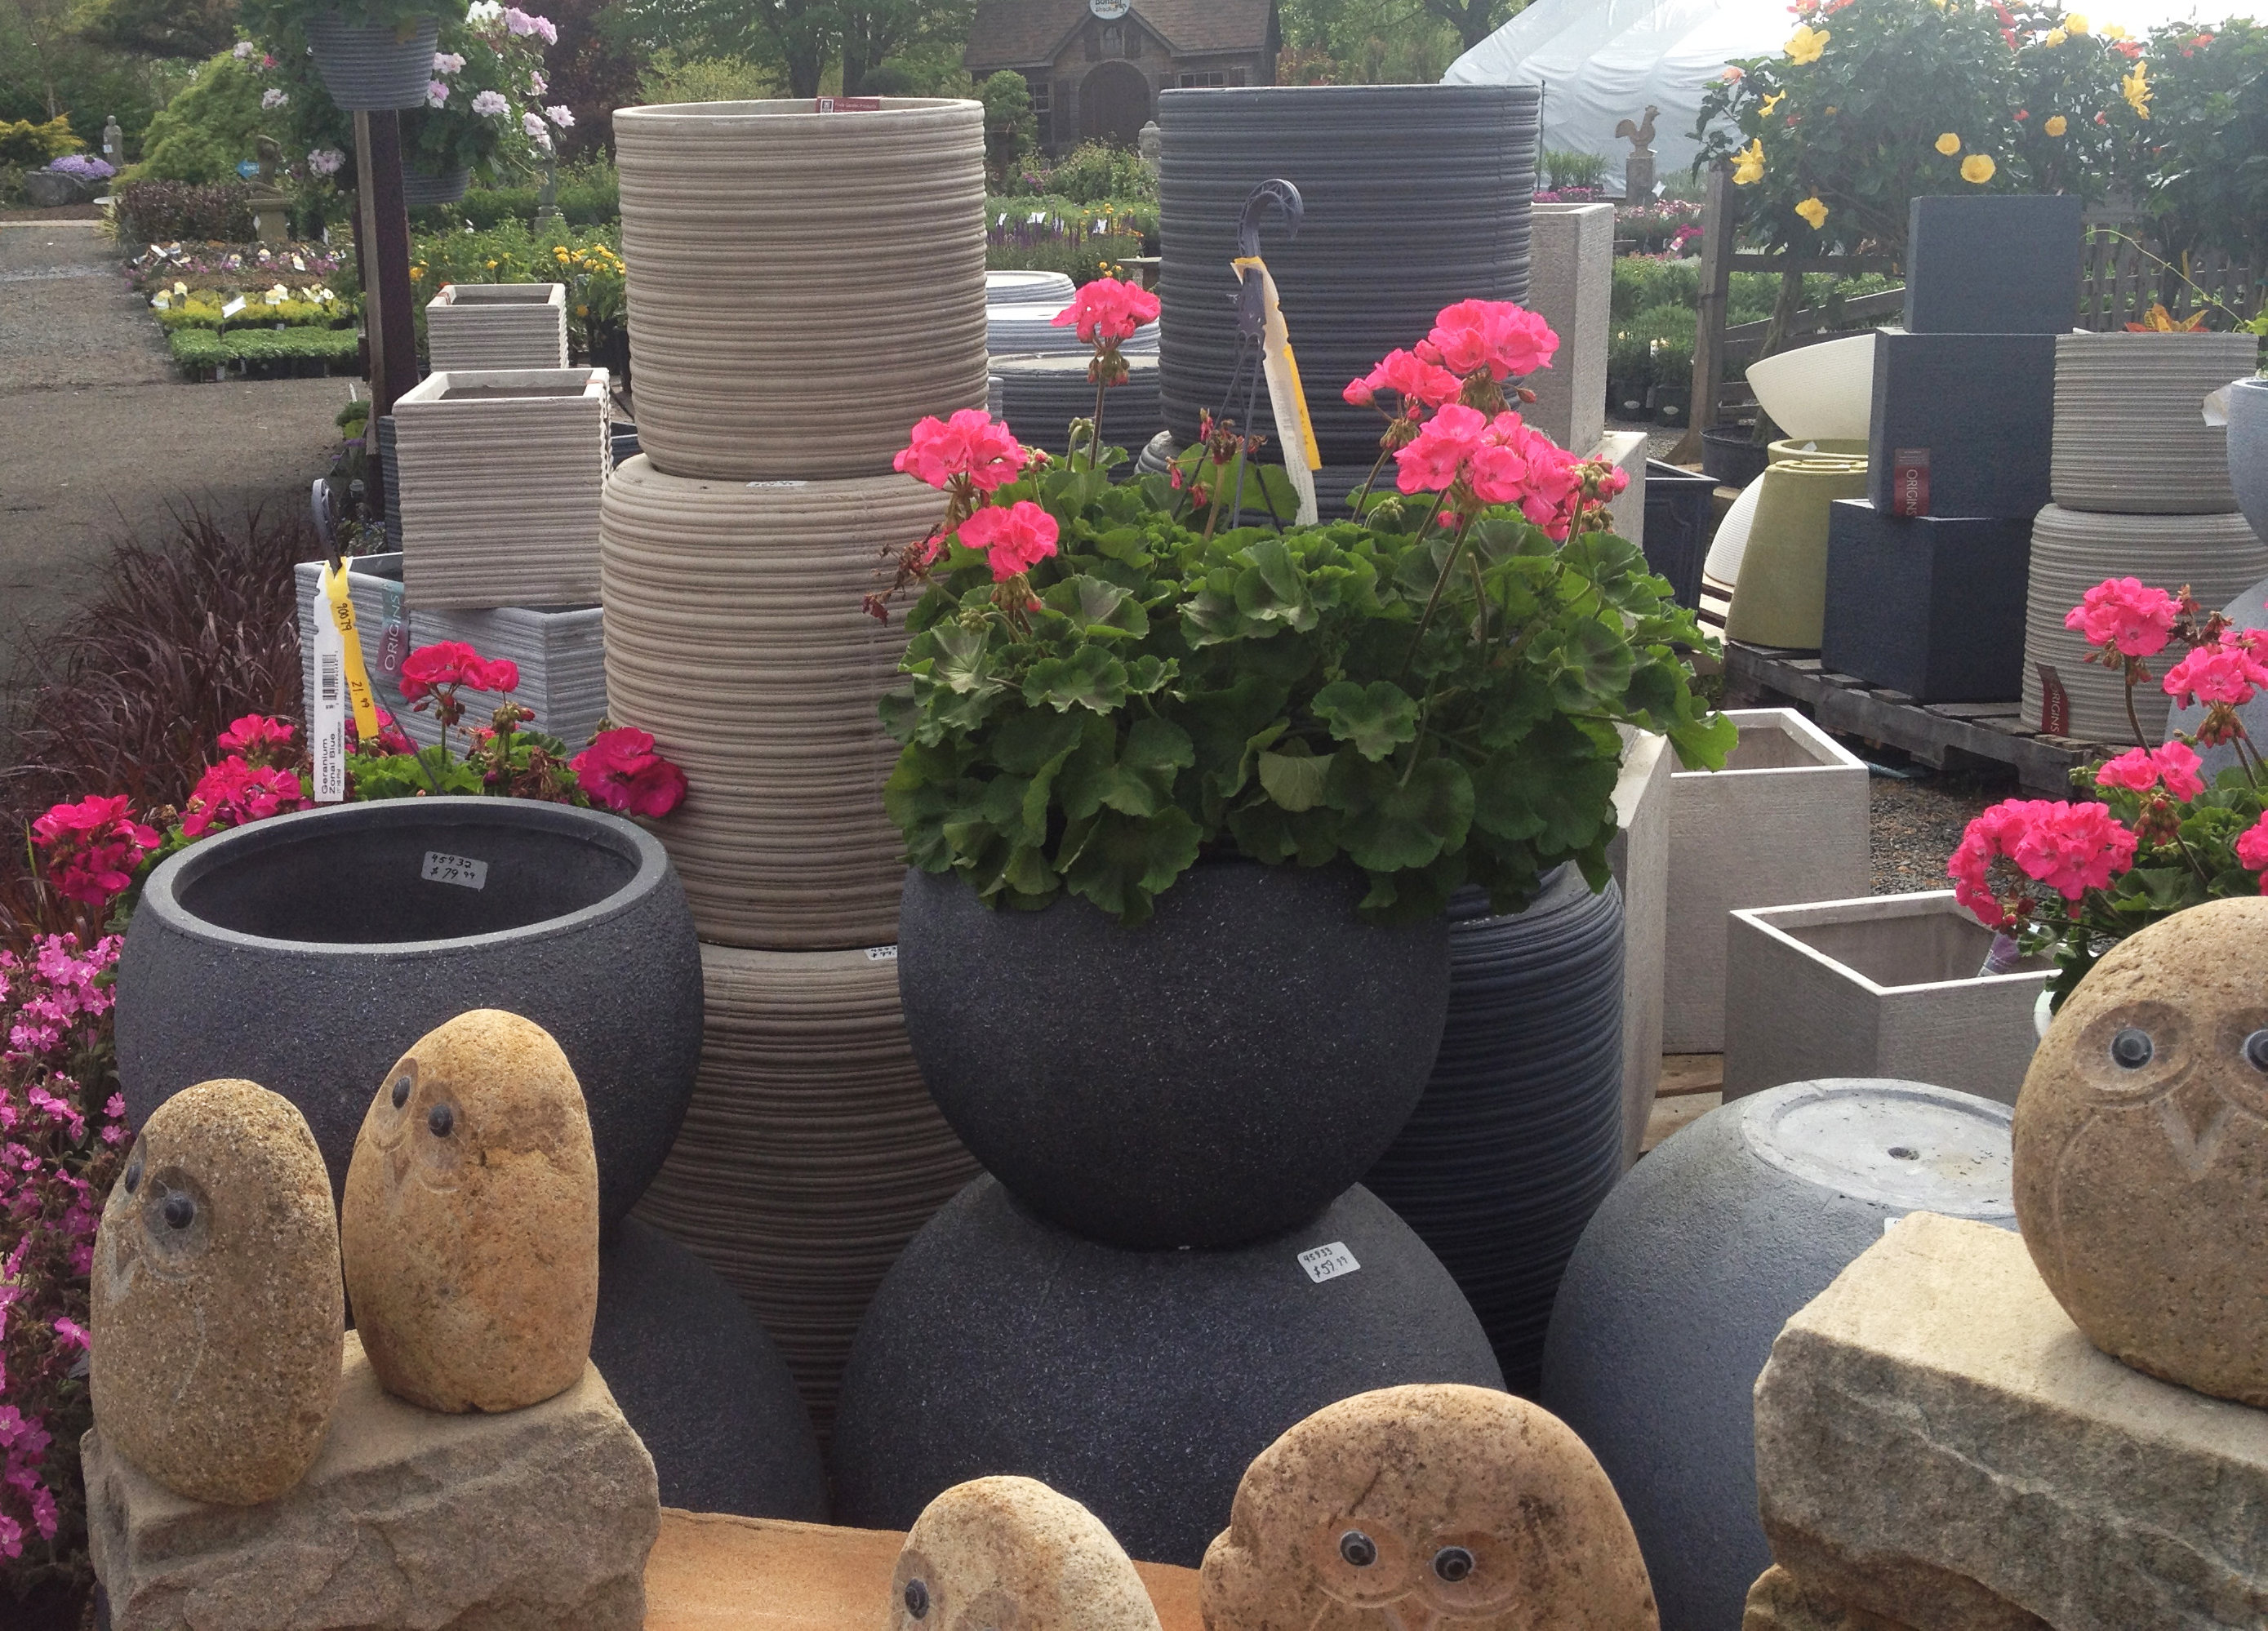 Planters, Pots, and Owl Statues